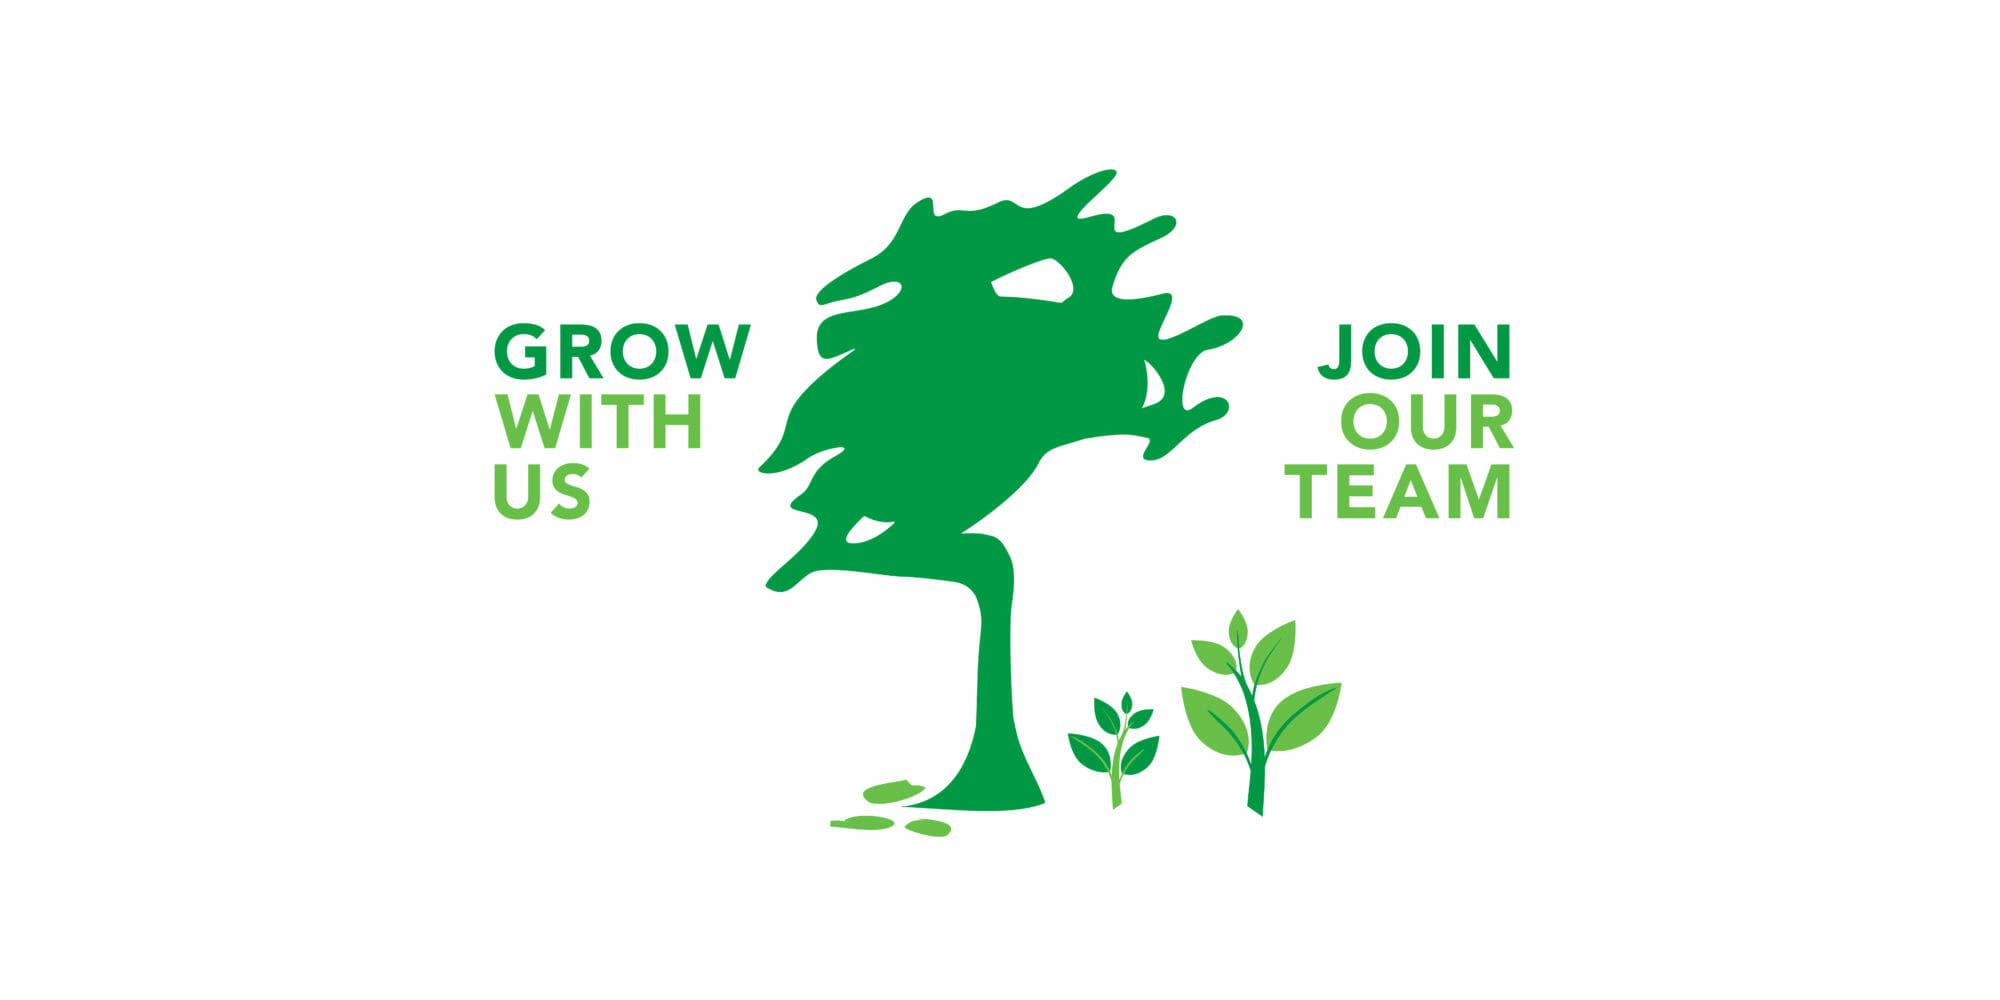 Join Our Team & Grow with Us